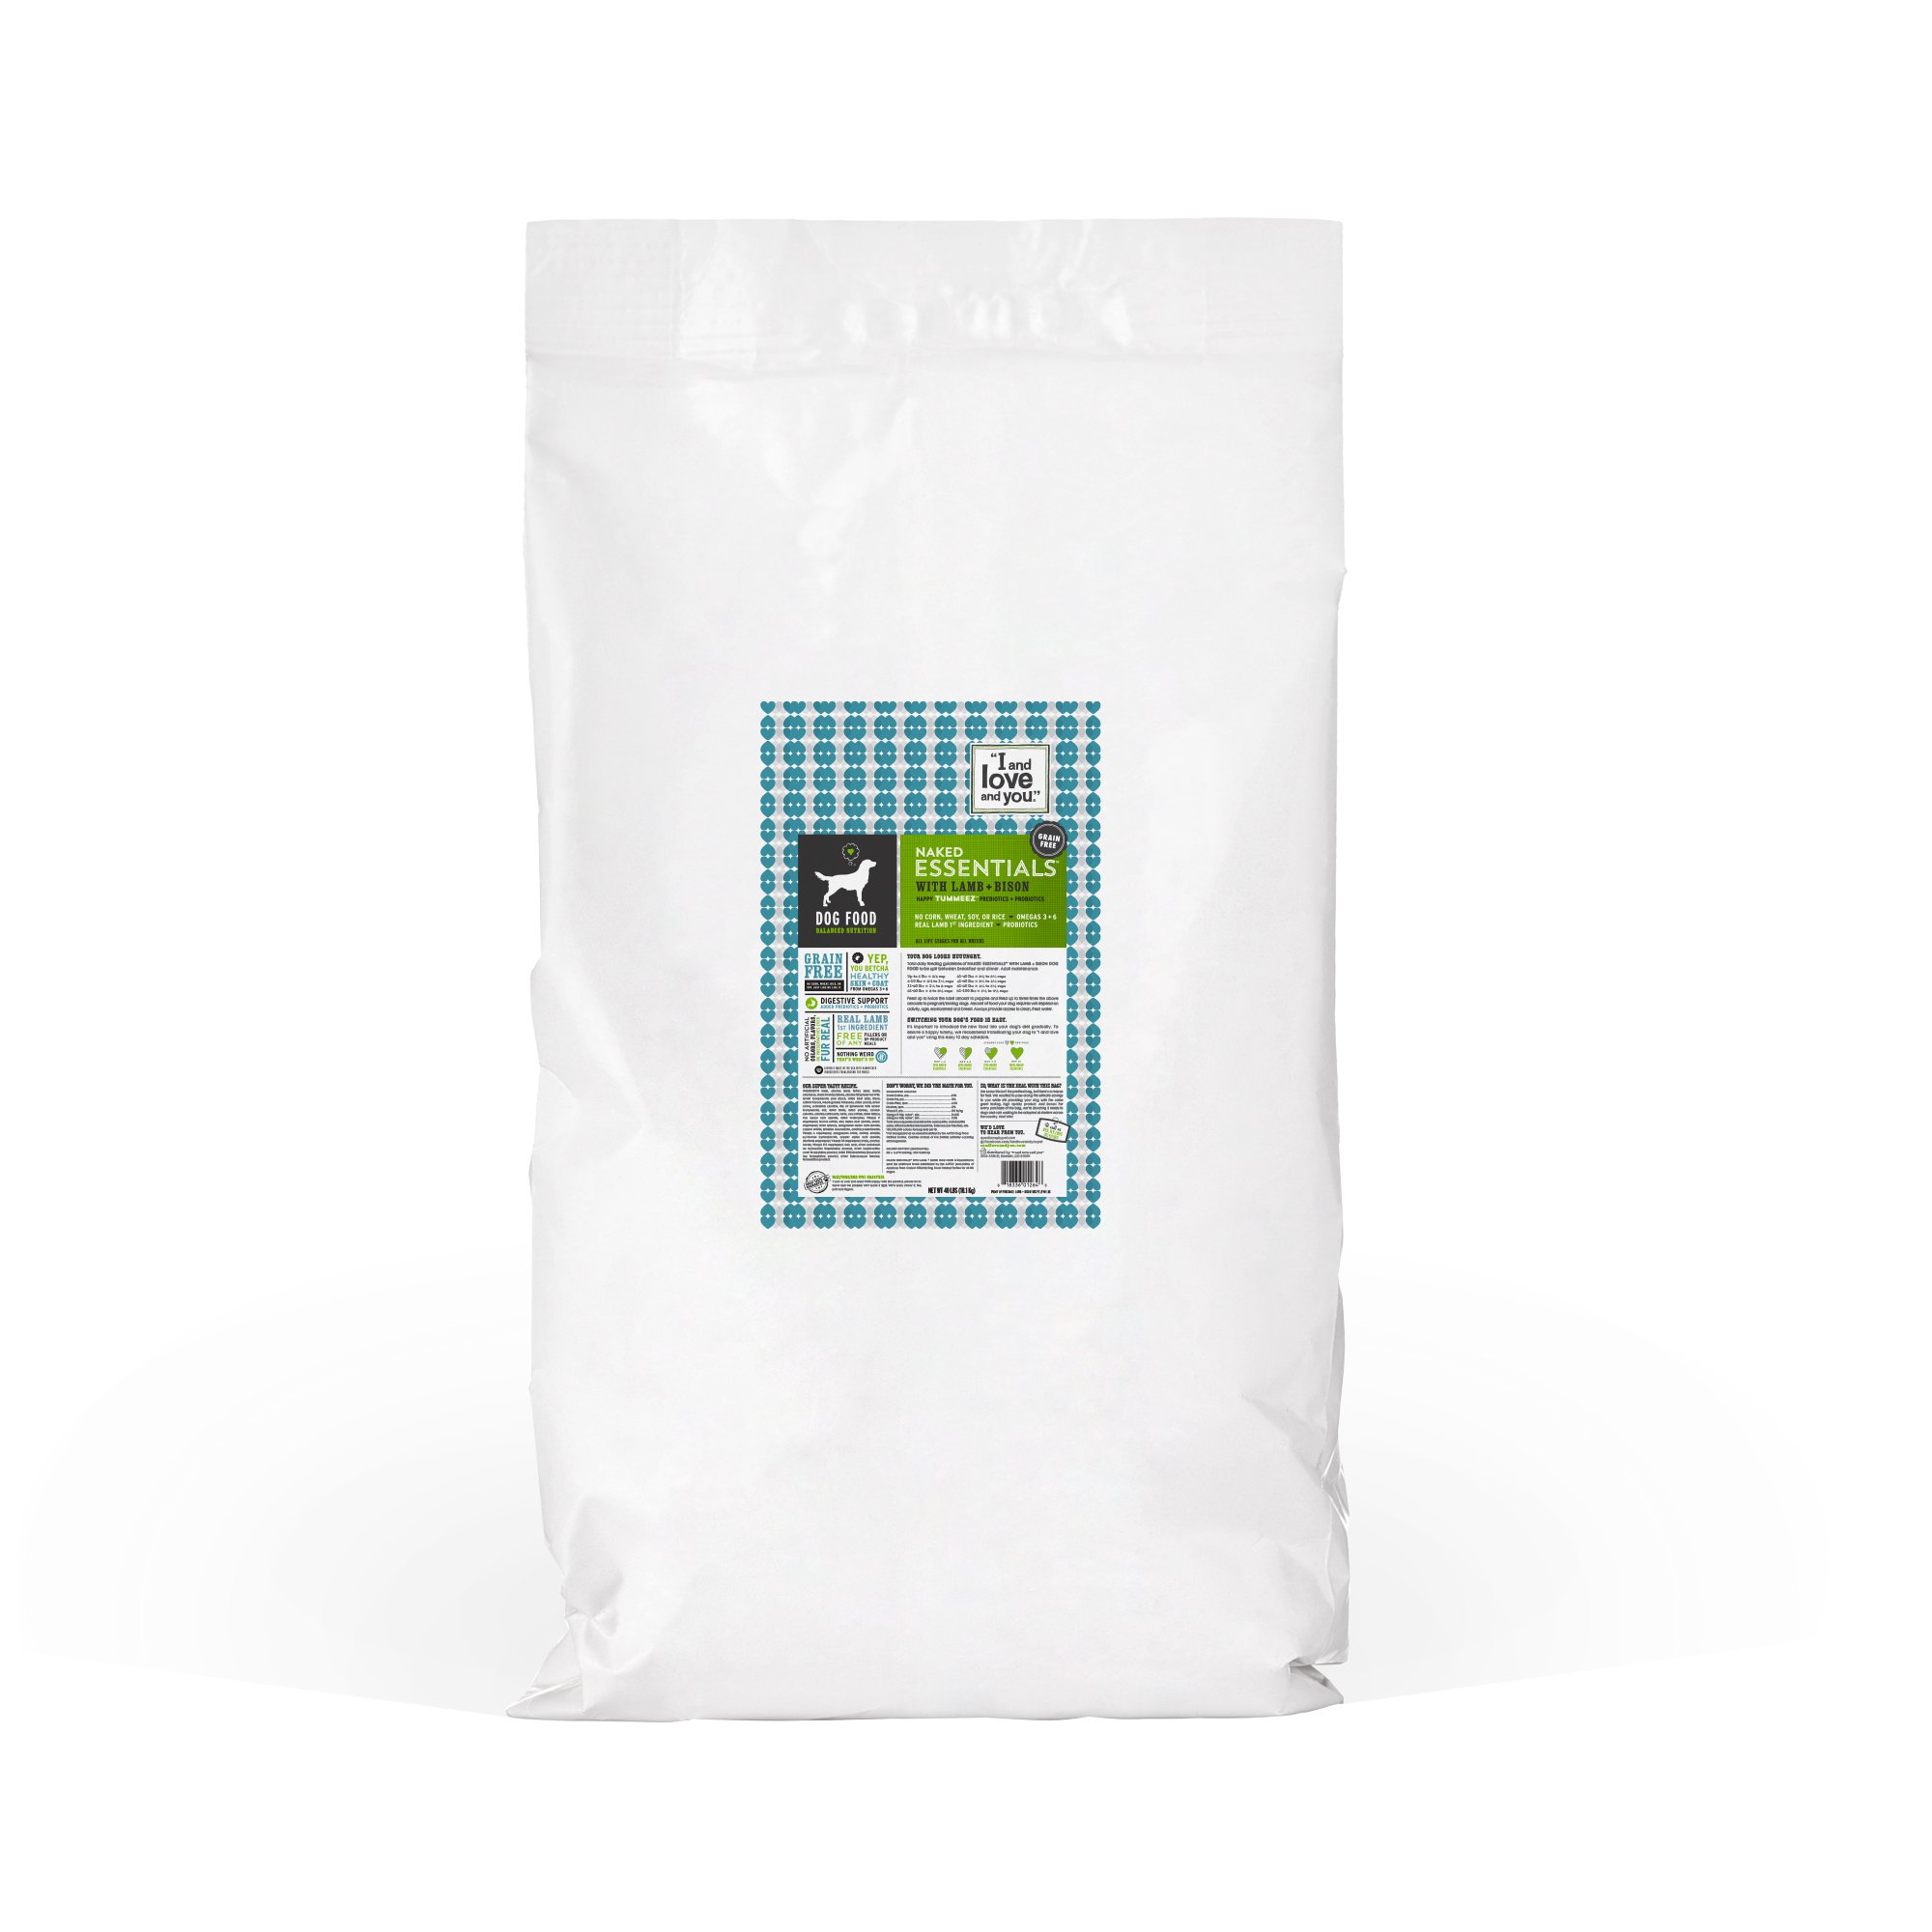 ''I and love and you'' Naked Essentials Lamb & Bison Grain Free Dry Dog Food, 40 LB by I and love and you (Image #1)